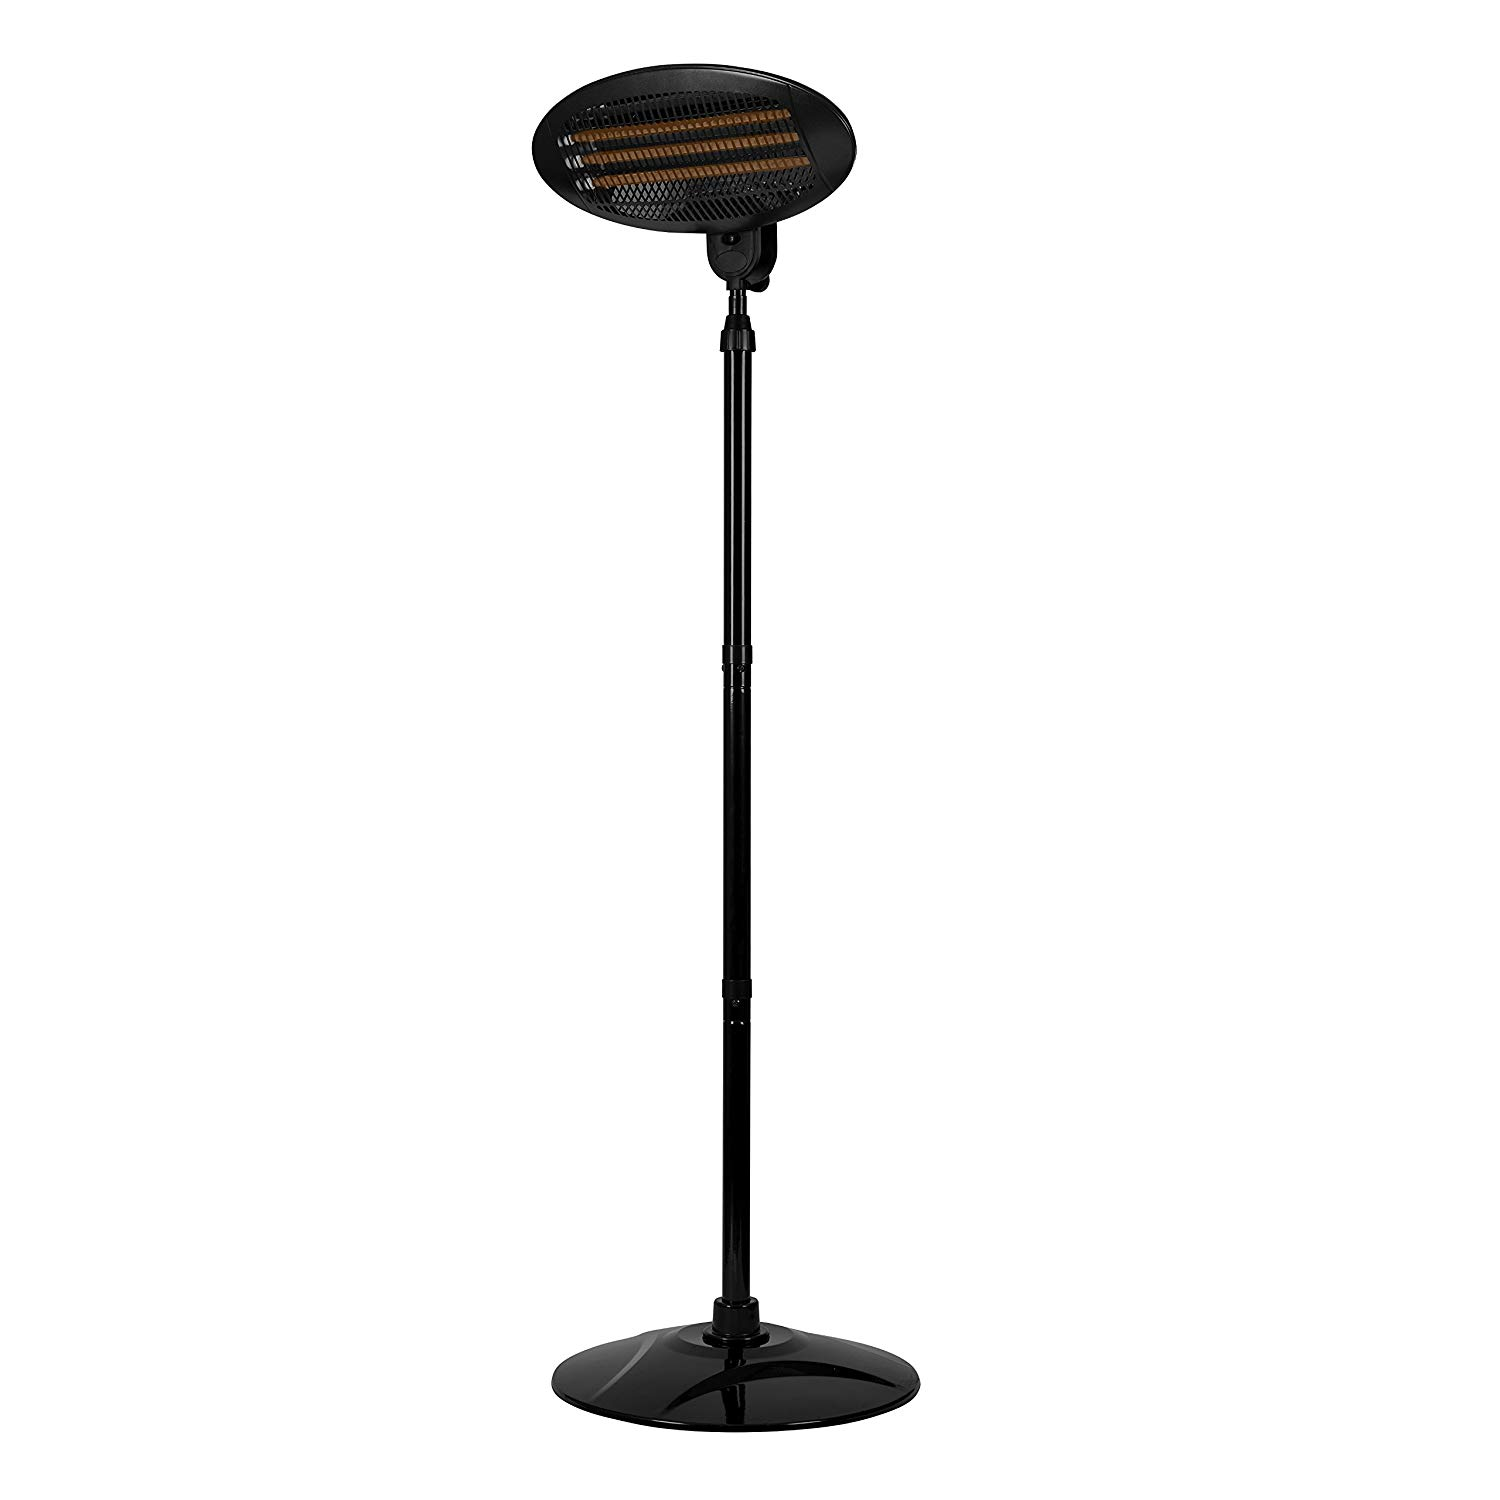 Warmlite 2KW Electric Quartz Garden Patio Heater - Black